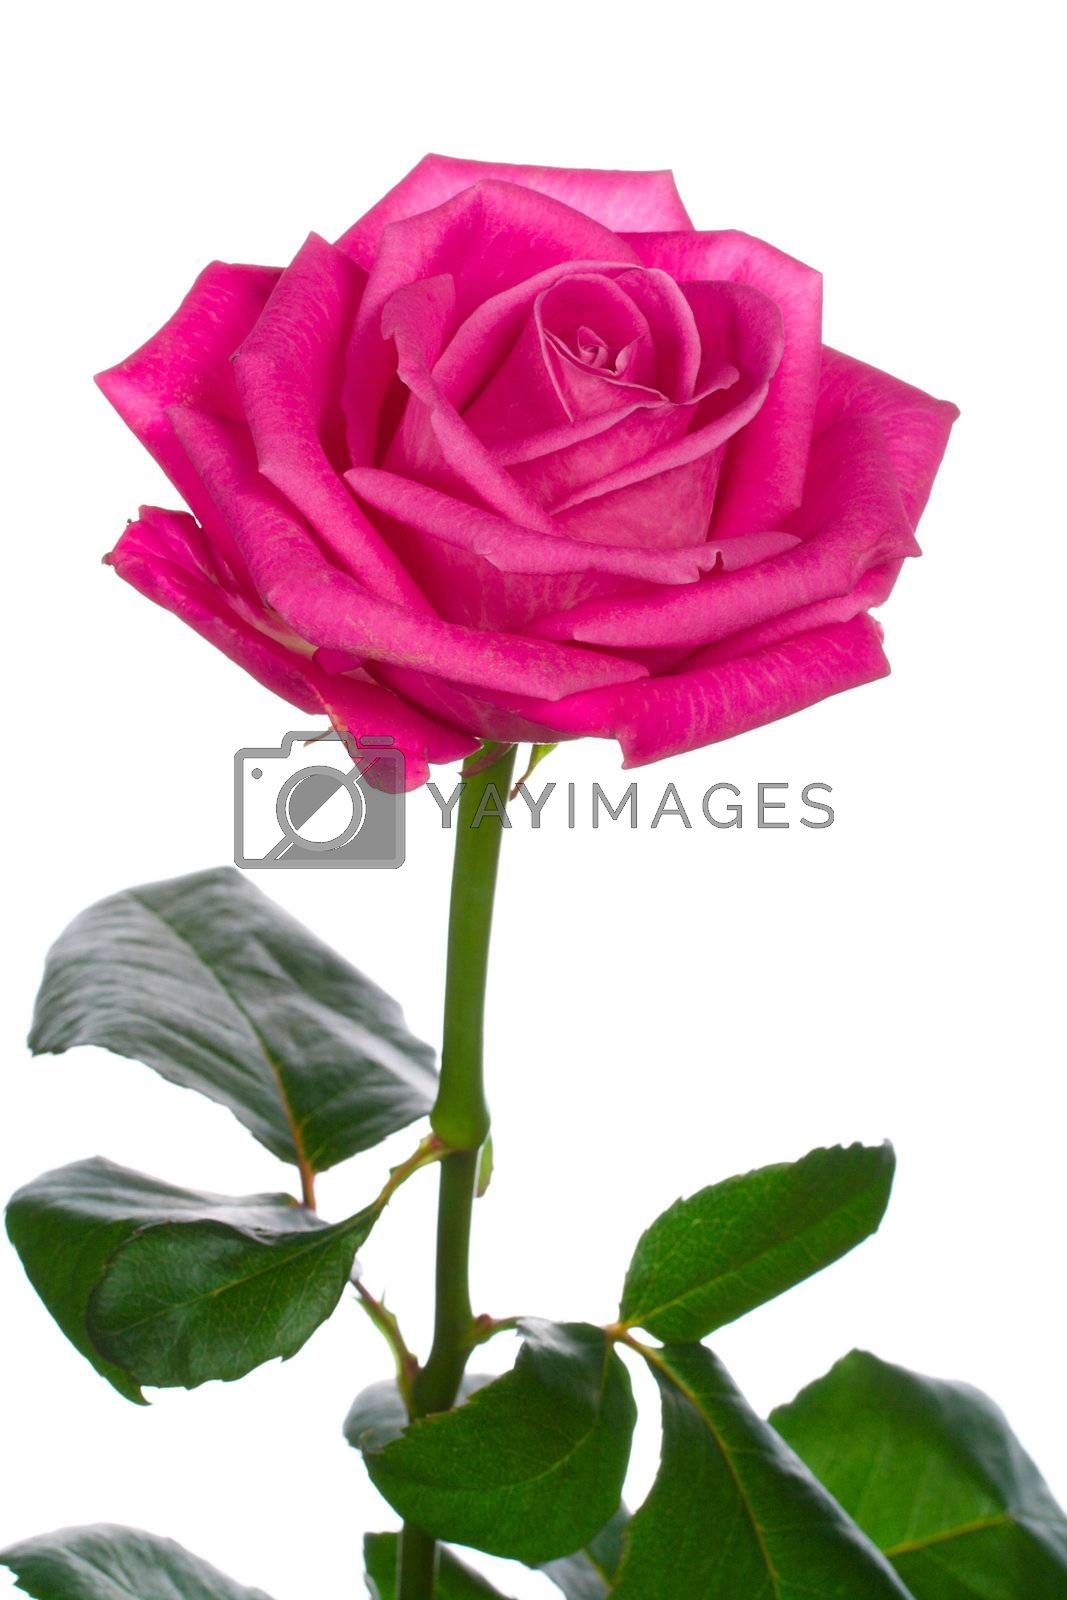 Royalty free image of beautiful pink rose by Alekcey